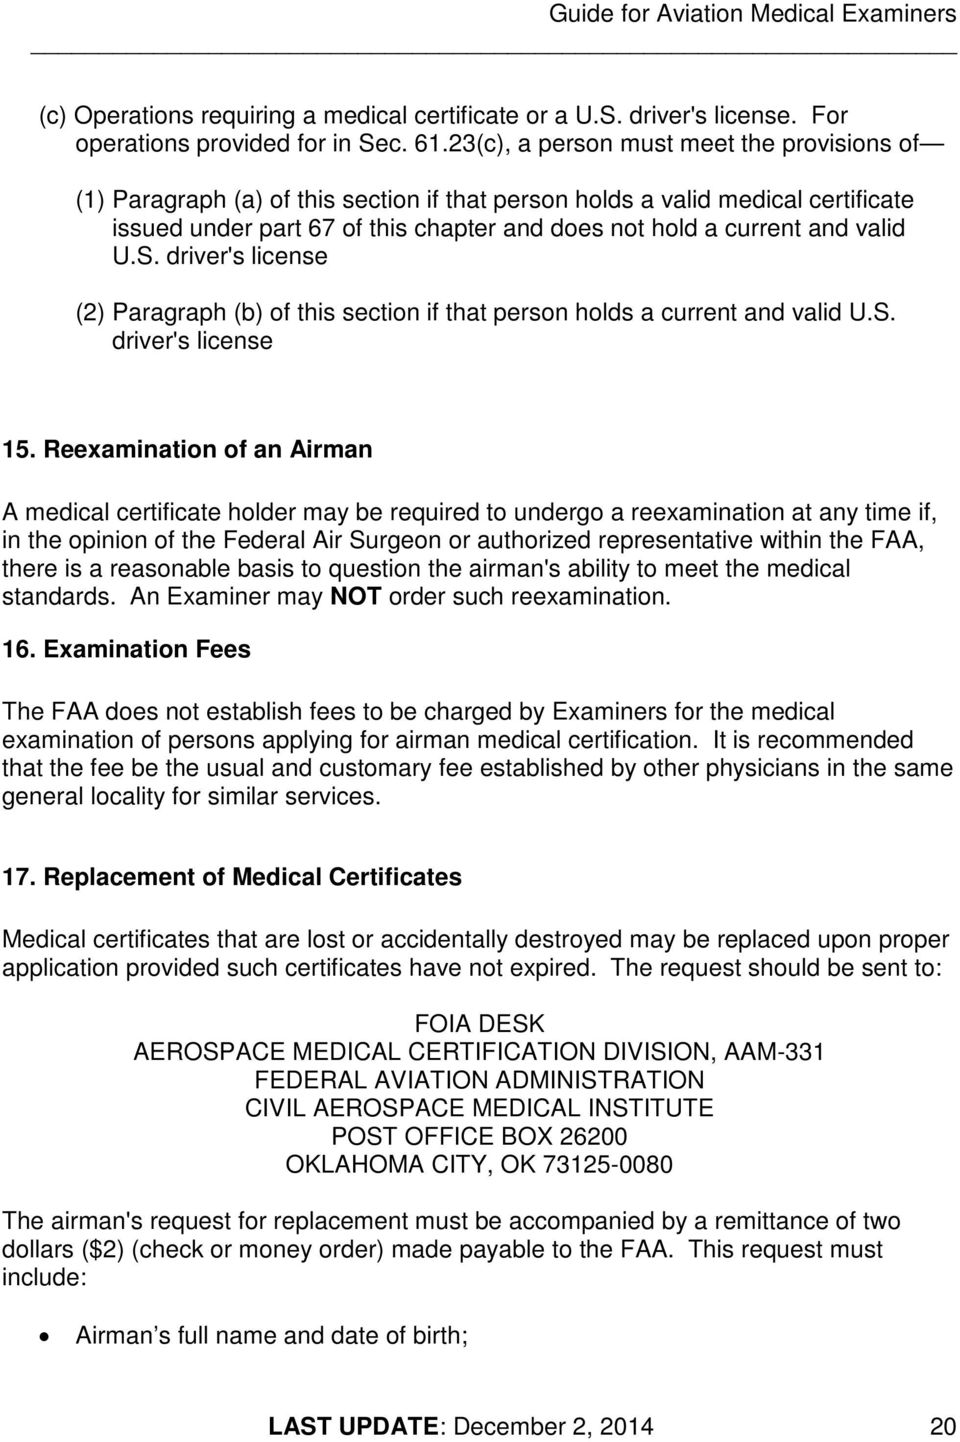 Current medical certificate for drivers 61